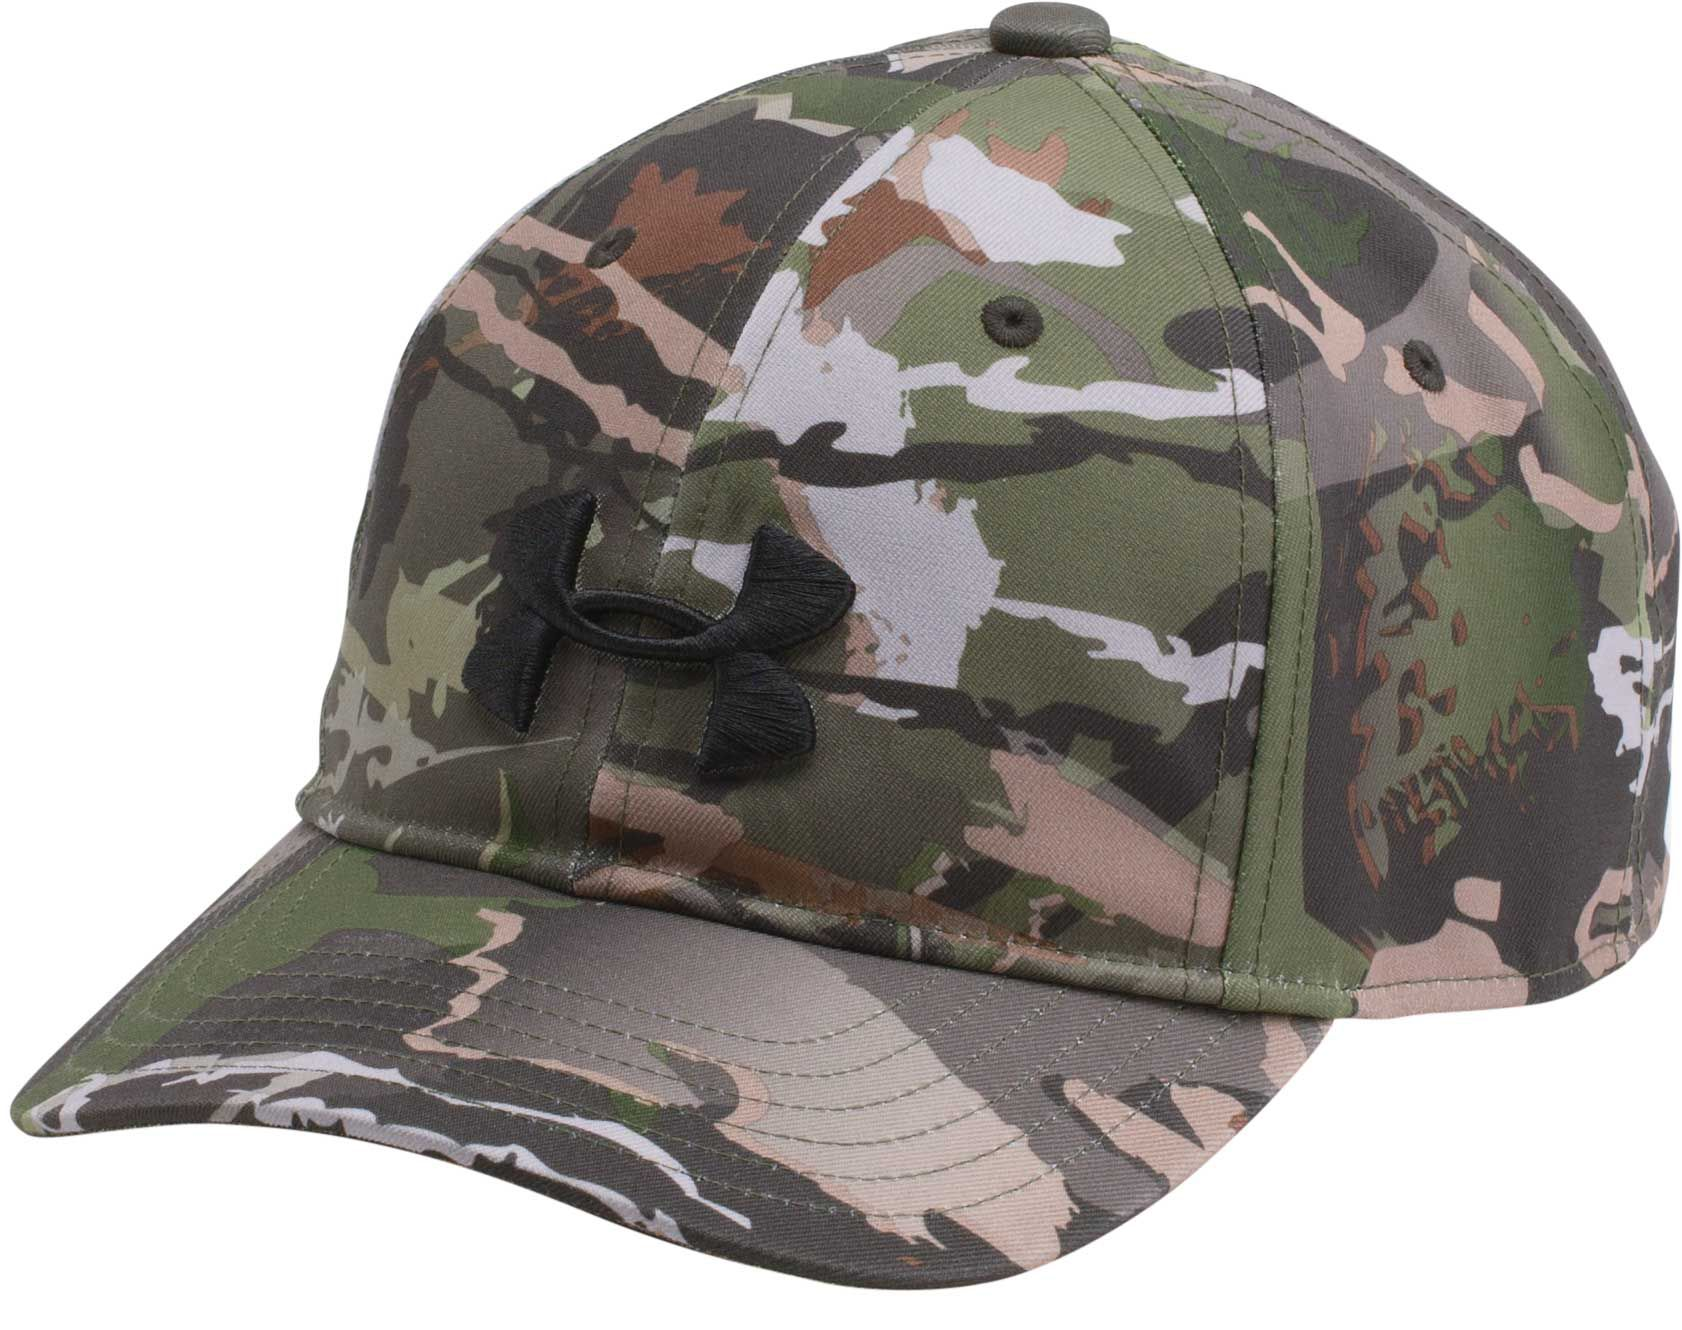 fc3b31cde42 ... release date under armour youth camo cap 2.0 hunting hat 35b88 3660f